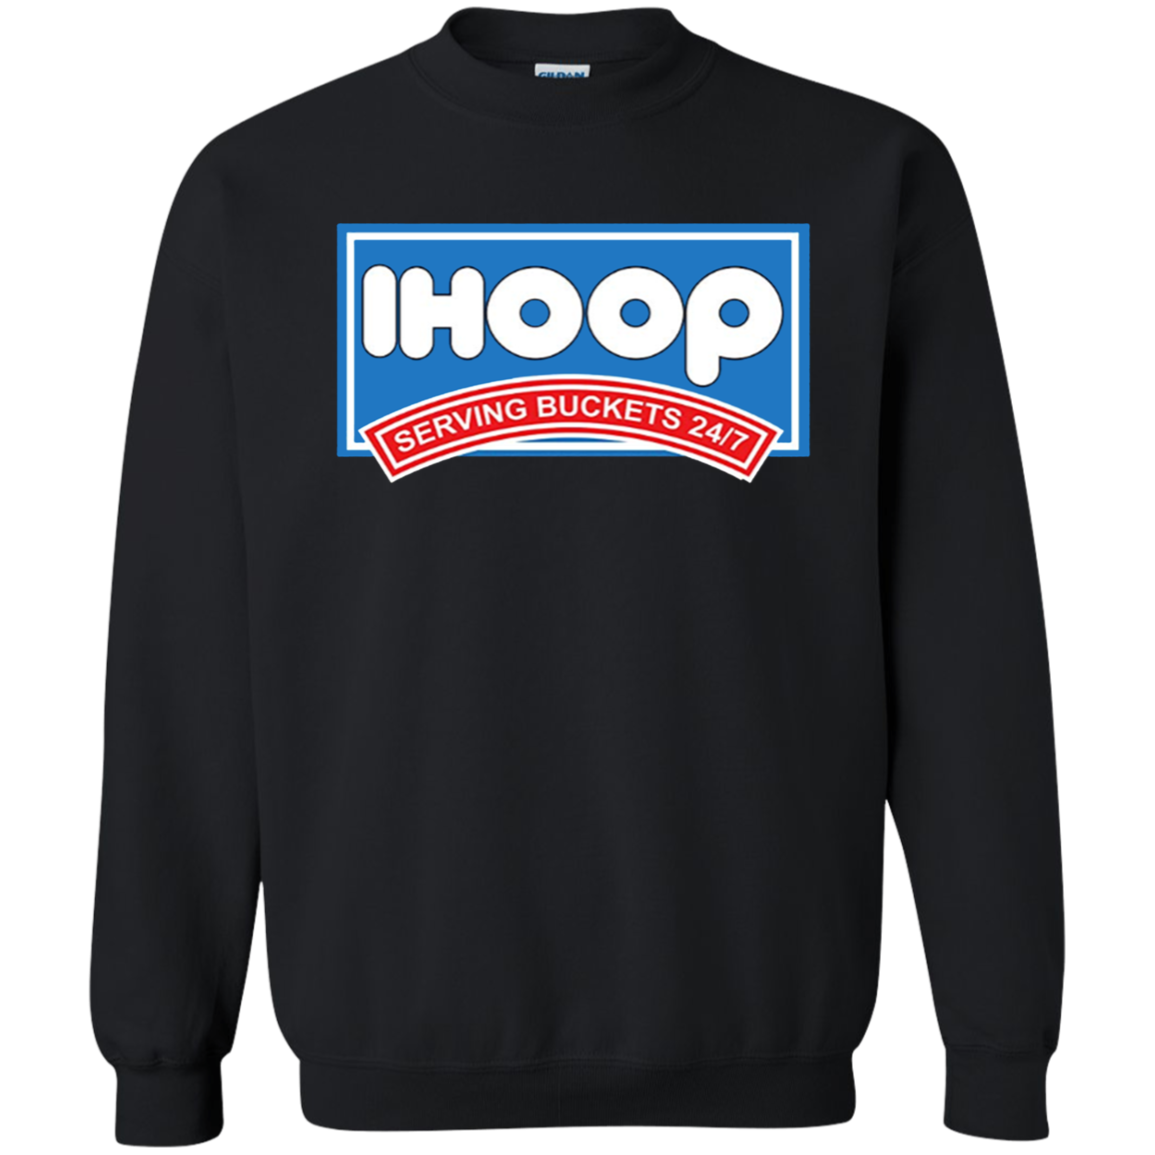 Ihoop Sweatshirt